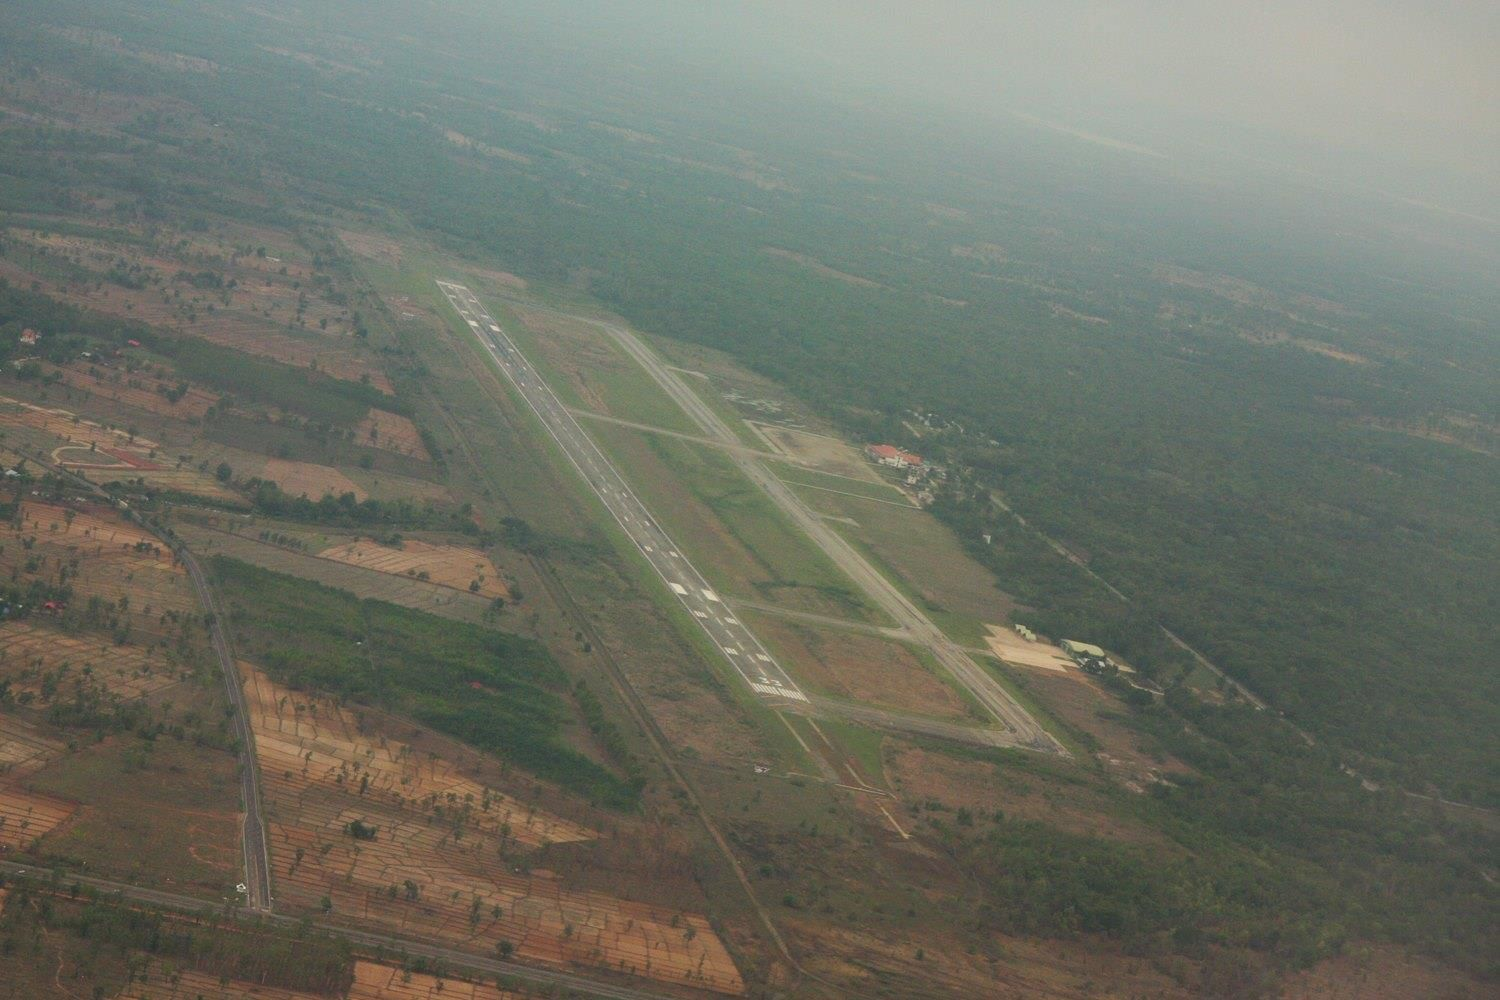 NKP from the air and he Plain of Jars, as of 2015.